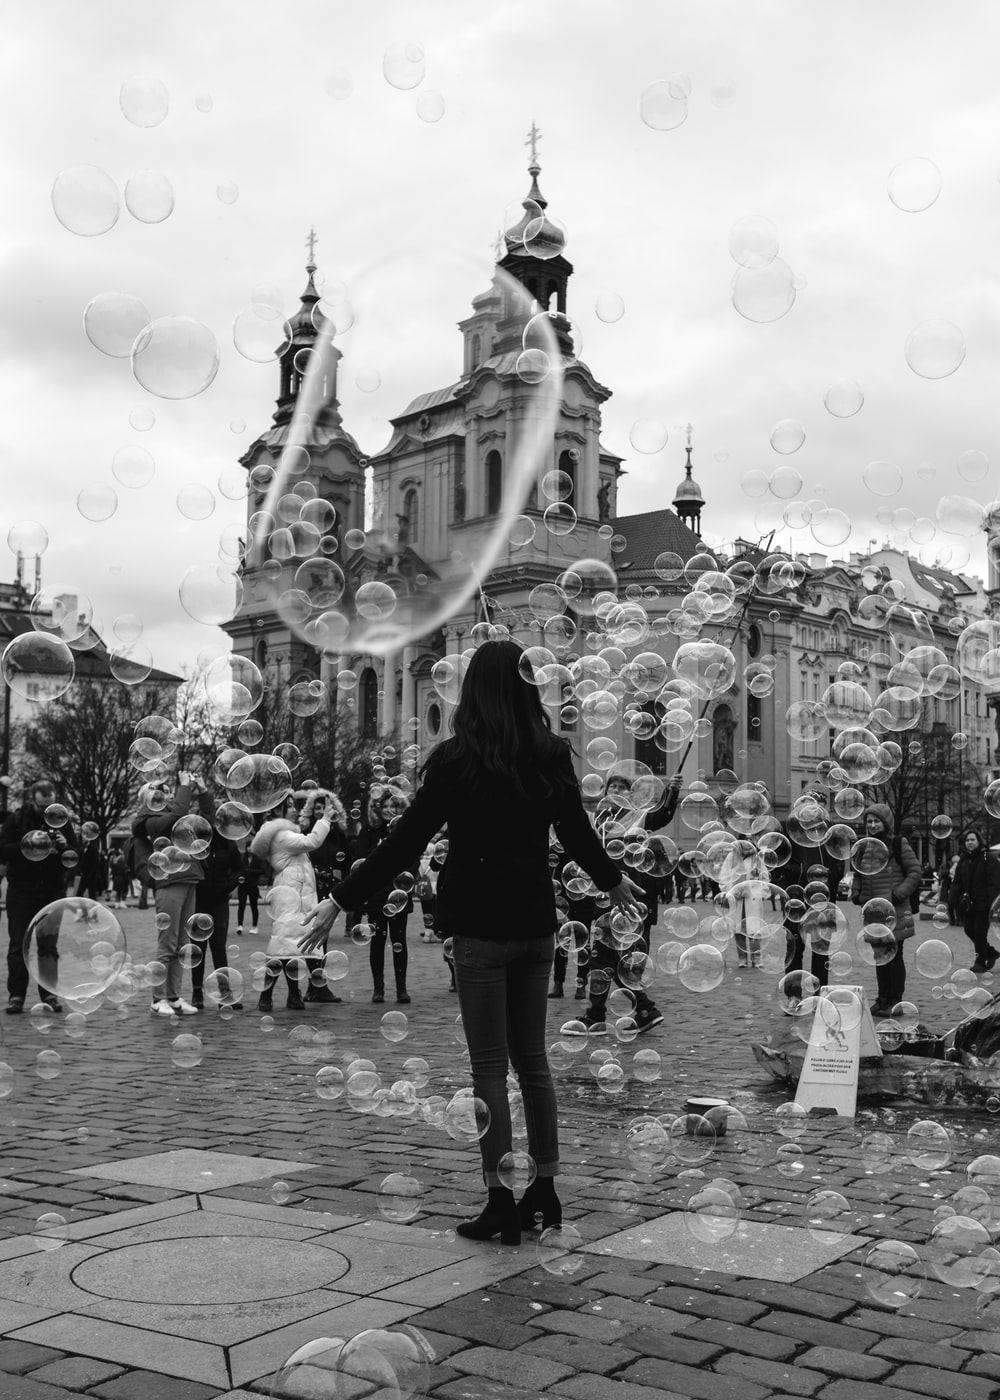 grayscale photo of woman in black jacket and pants standing on street with bubbles